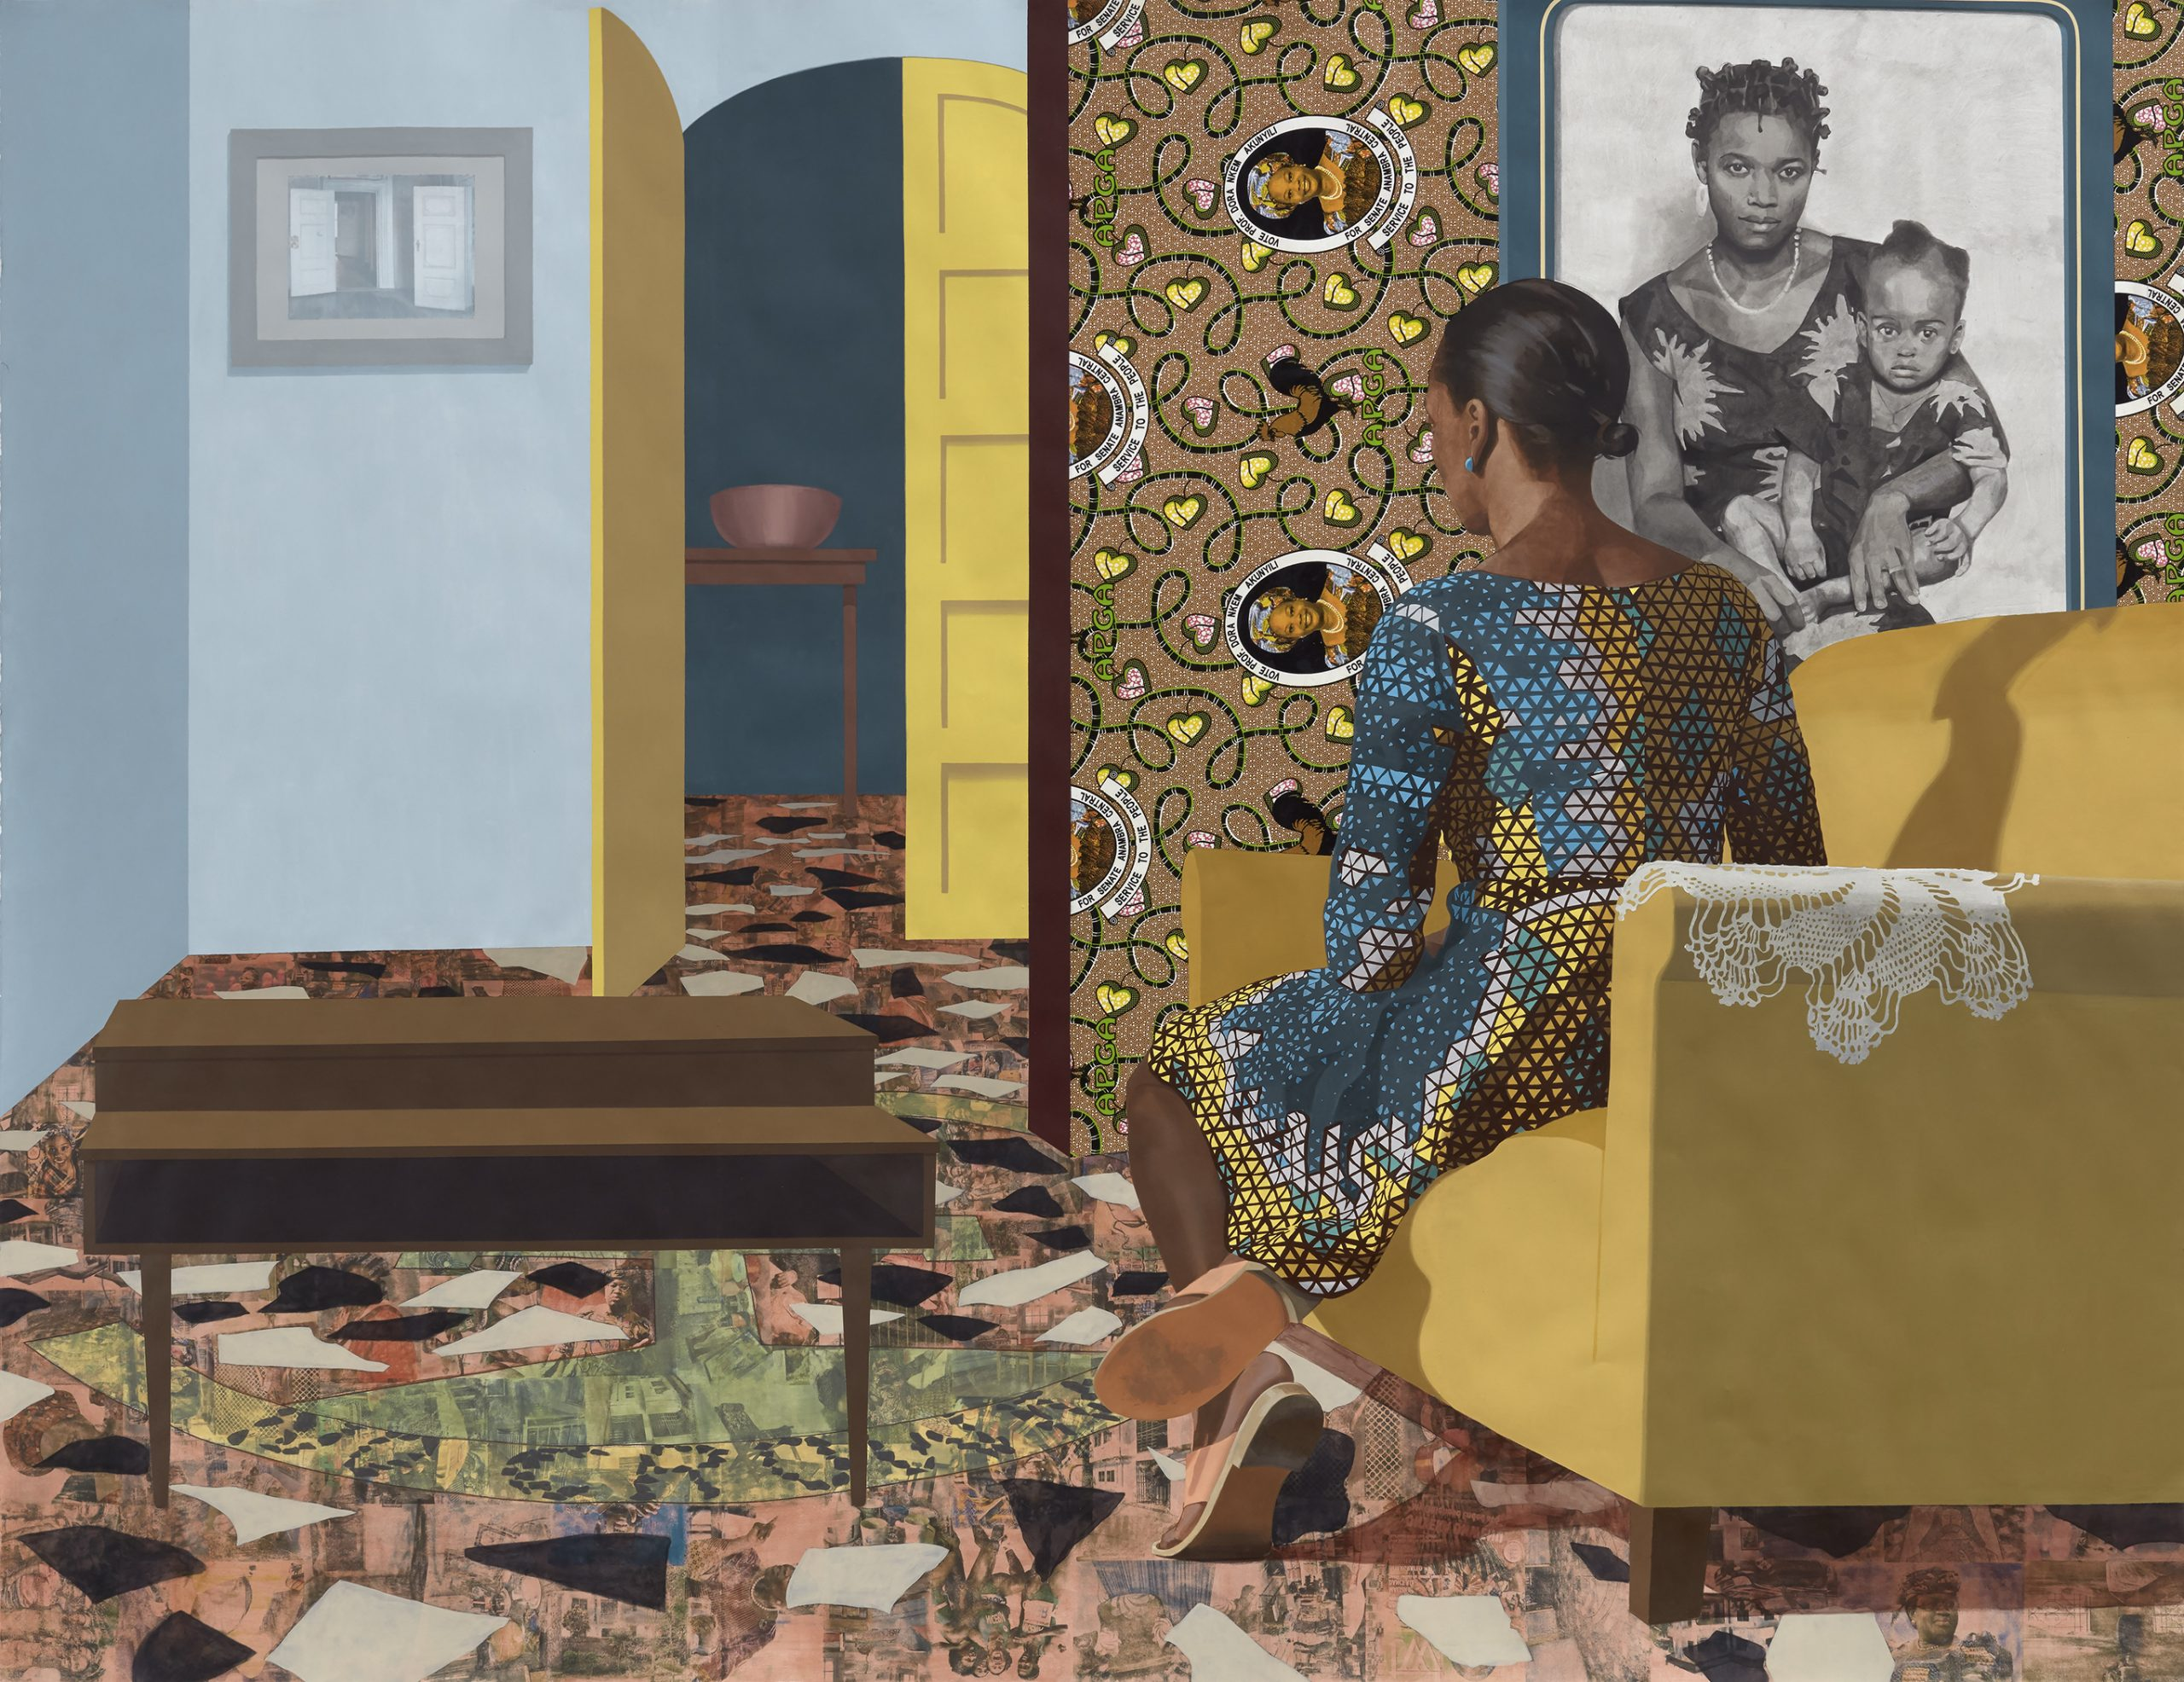 A painted figure sits on a sofa gazing away, down the hallway of a domestic space.